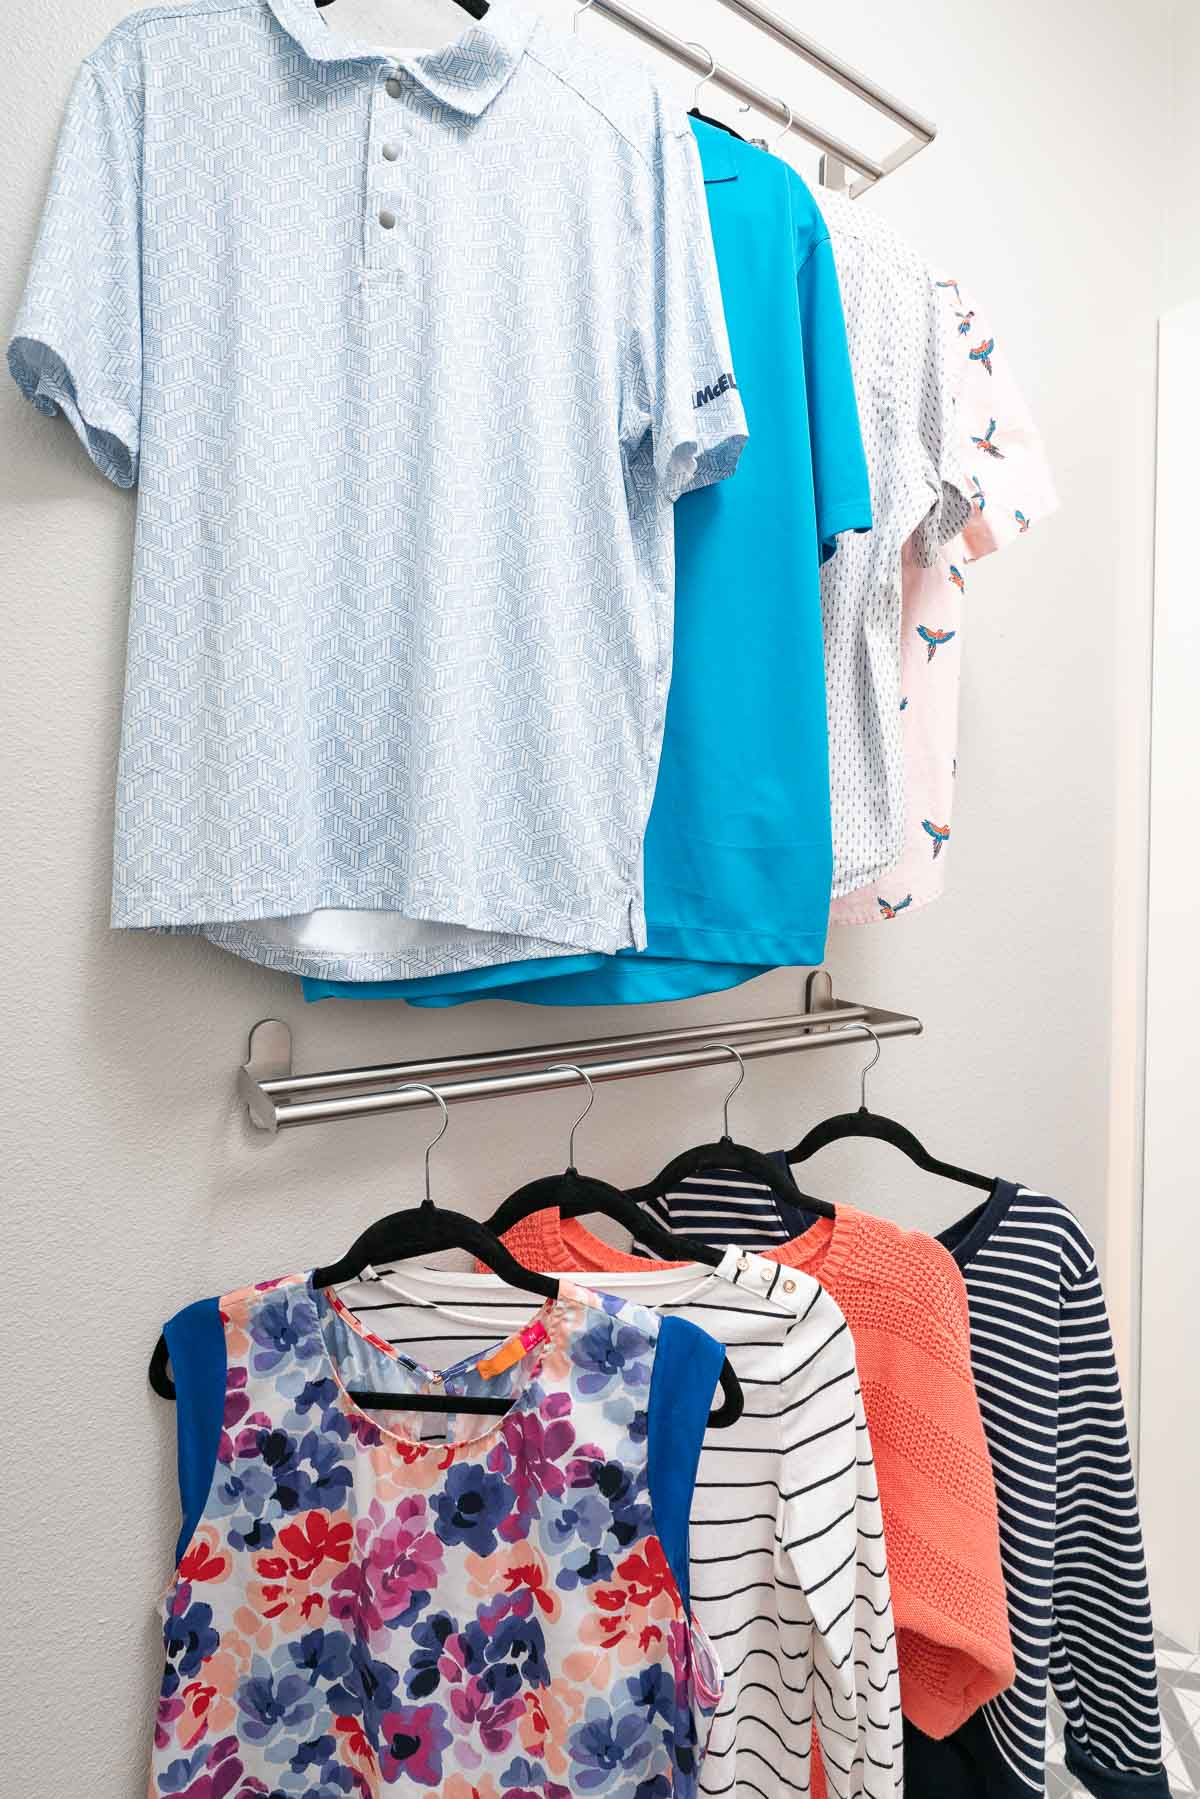 mens clothes hanging on rod above women's clothing on lower rod